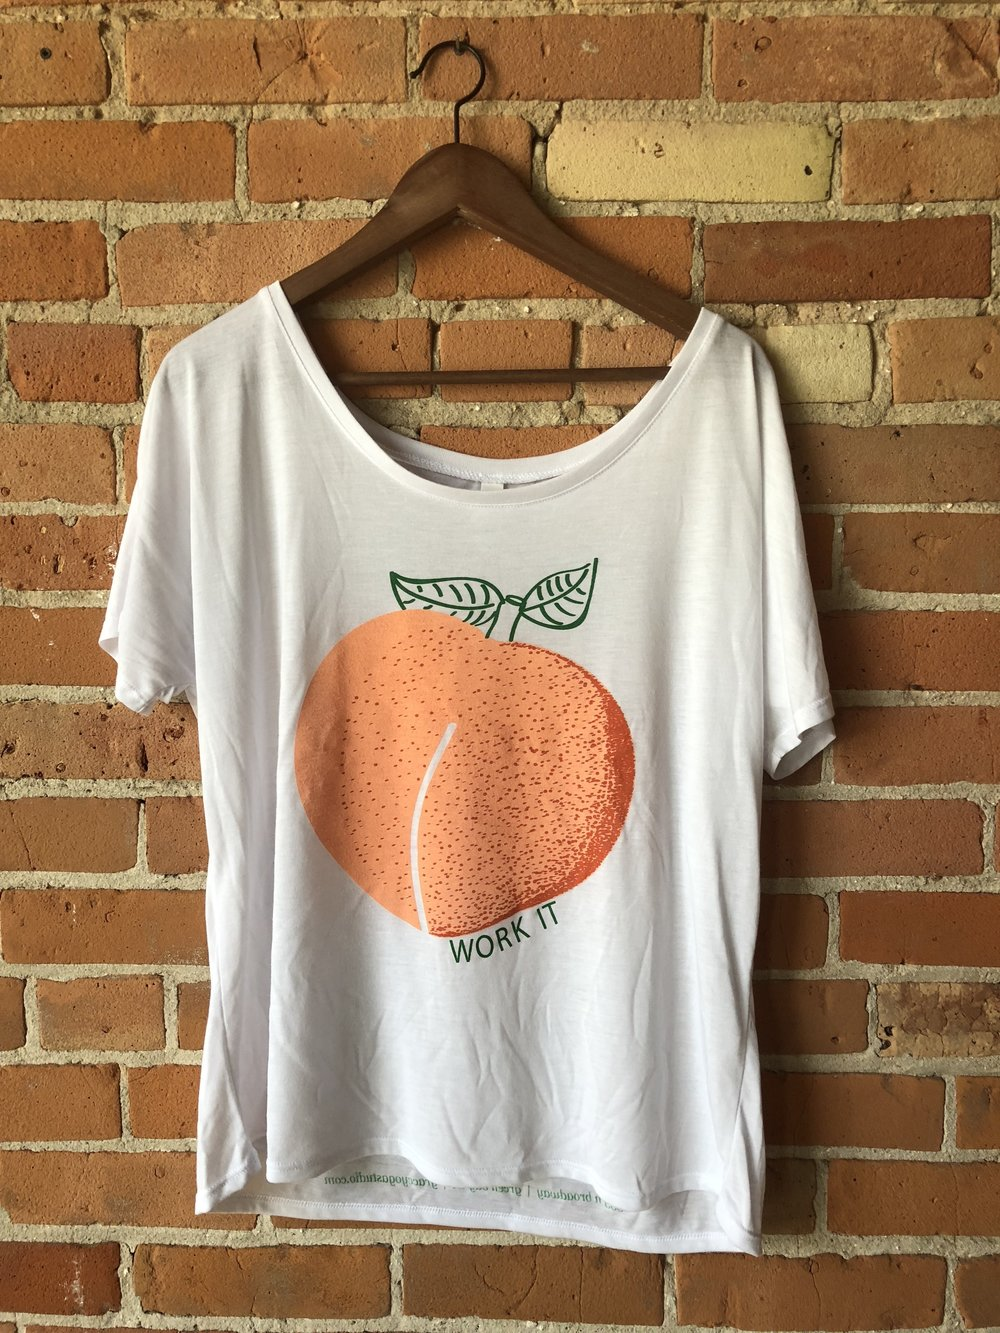 - Work It Peach Boat Neck T-Shirt$18